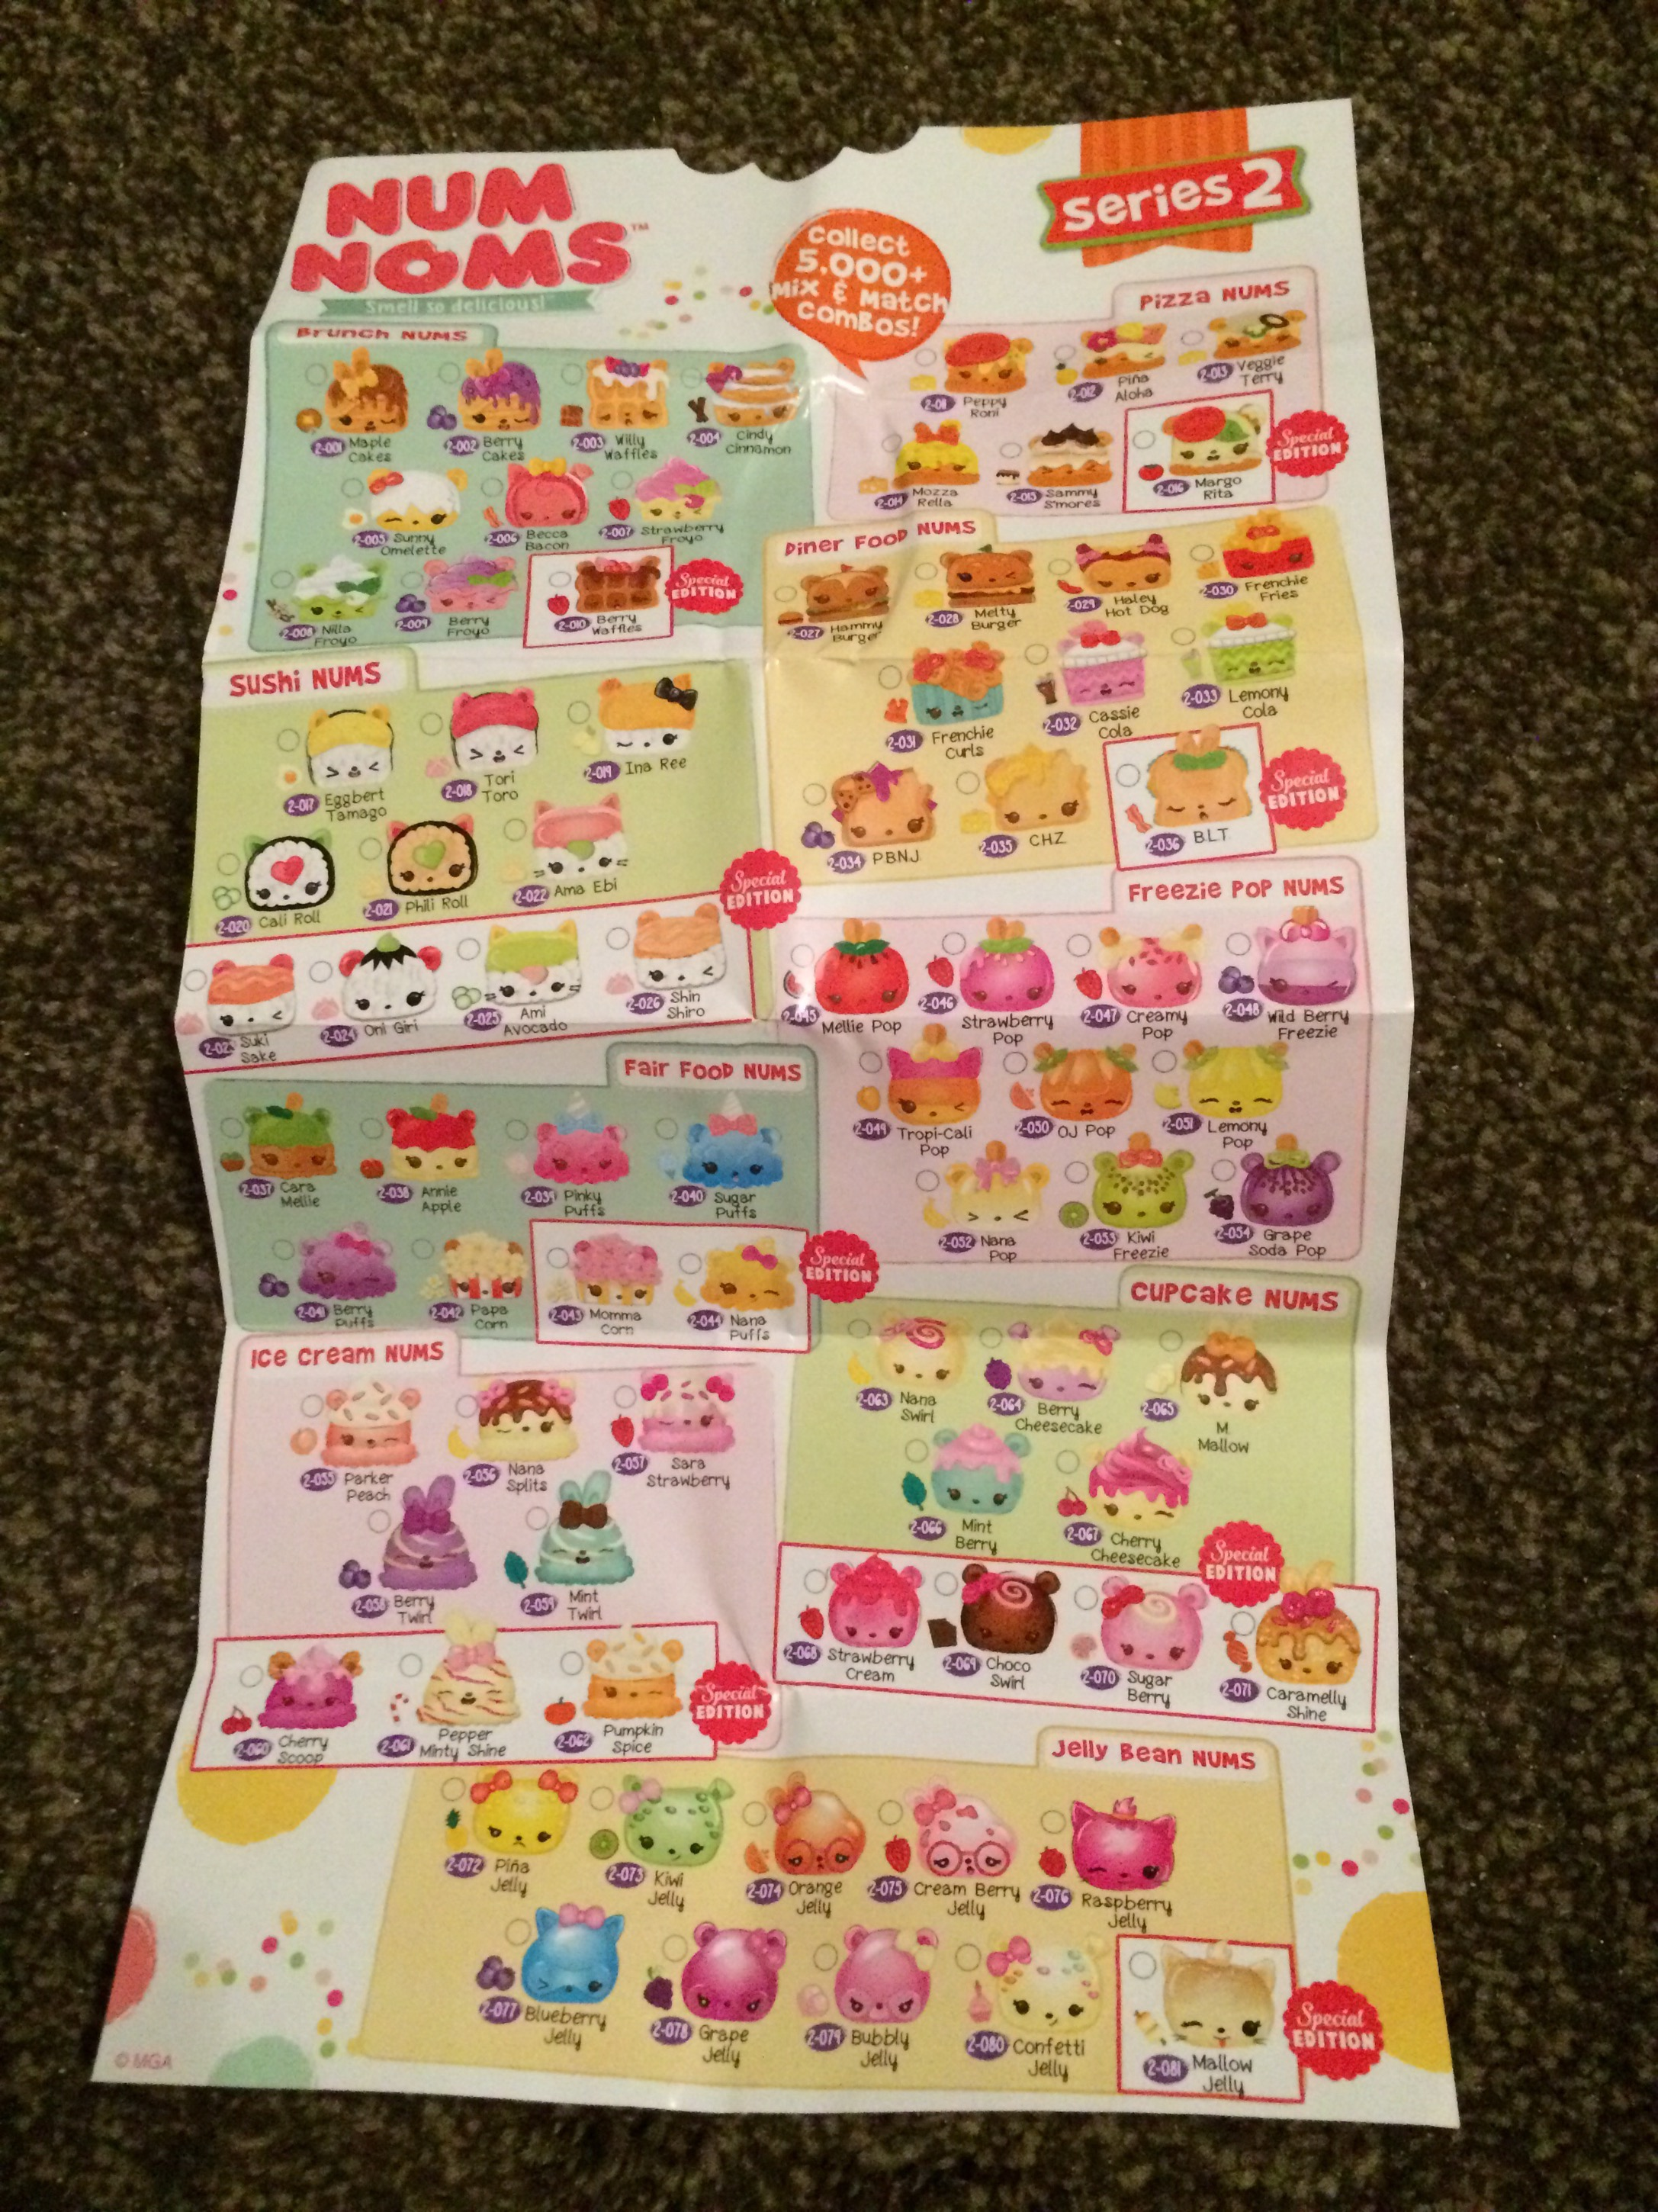 The Num Noms Do Have The Whole Japansese Kawaii/images Feel About Them.  Cute, Collectable And Especially With The Addition Of Lip Gloss, Stamps And  Erasers.